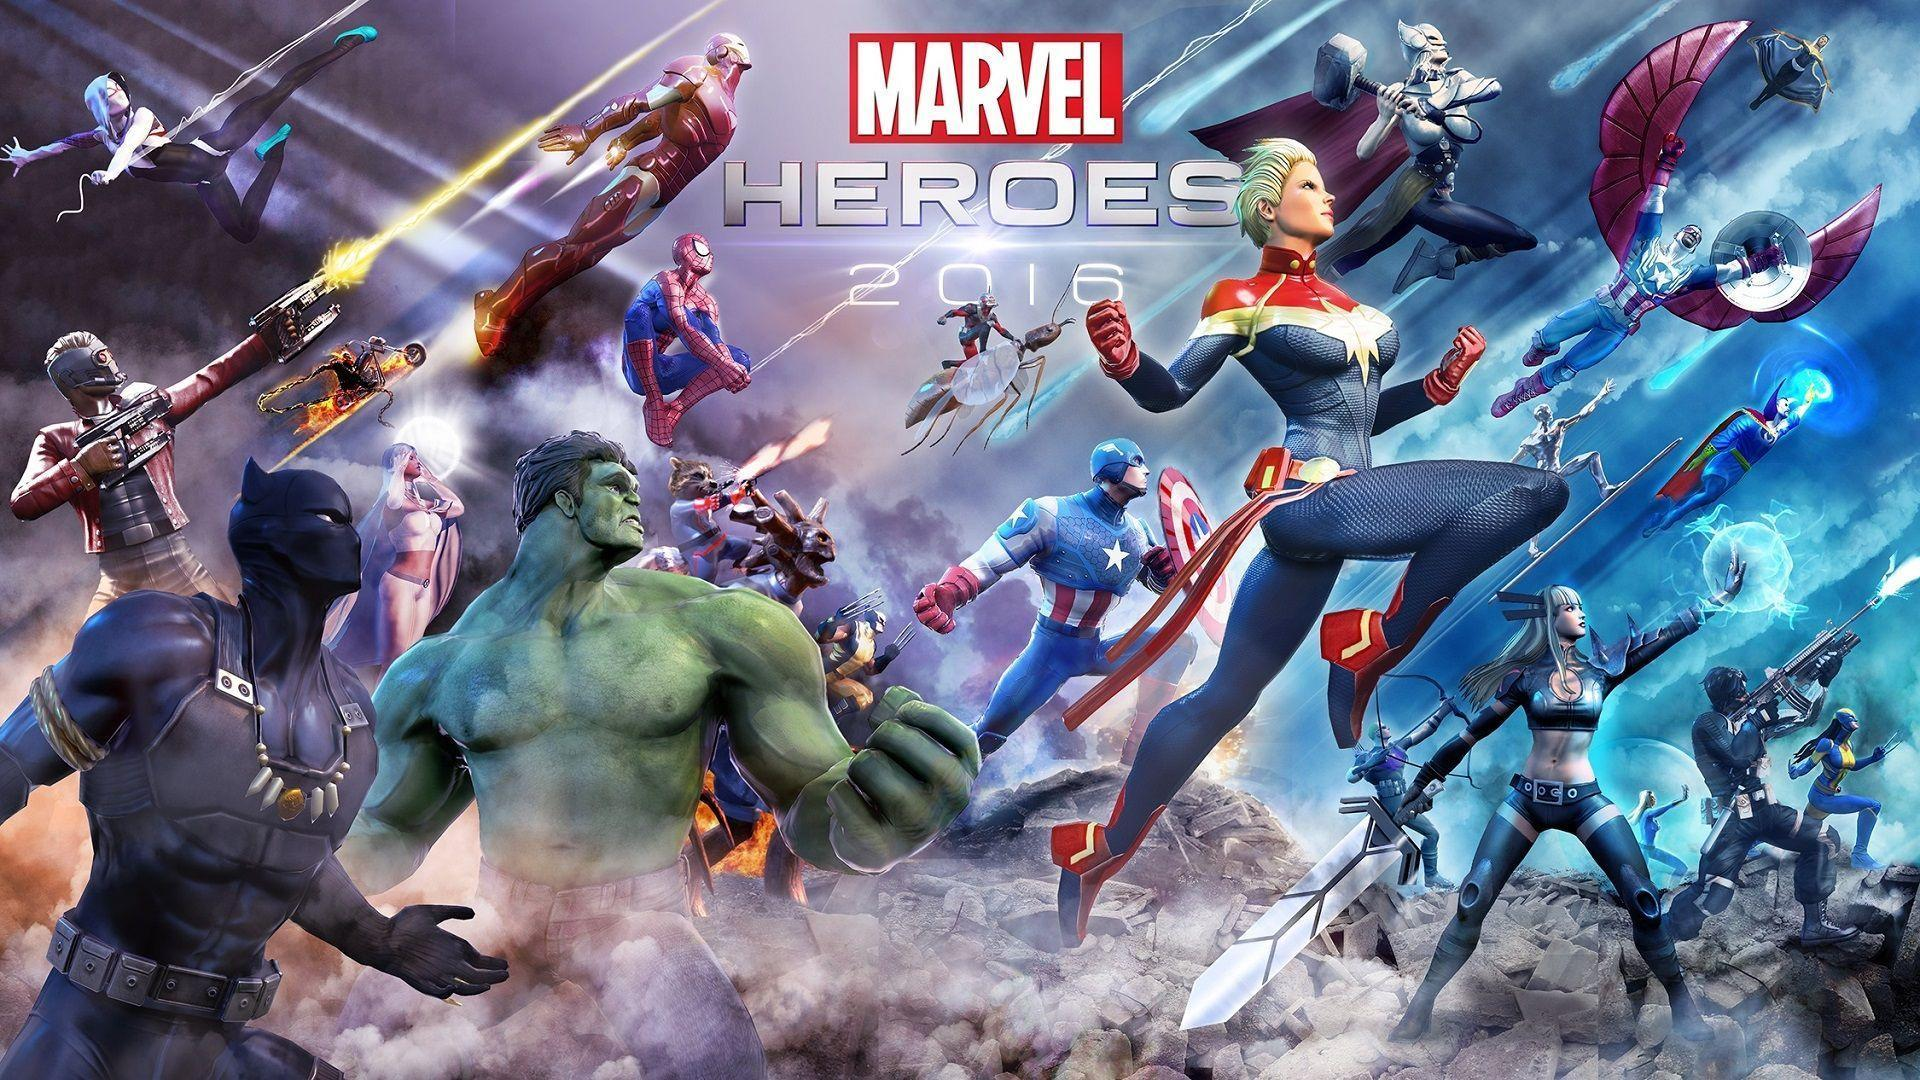 Could someone Photoshop the Marvel Heroes 2016 Wallpaper?